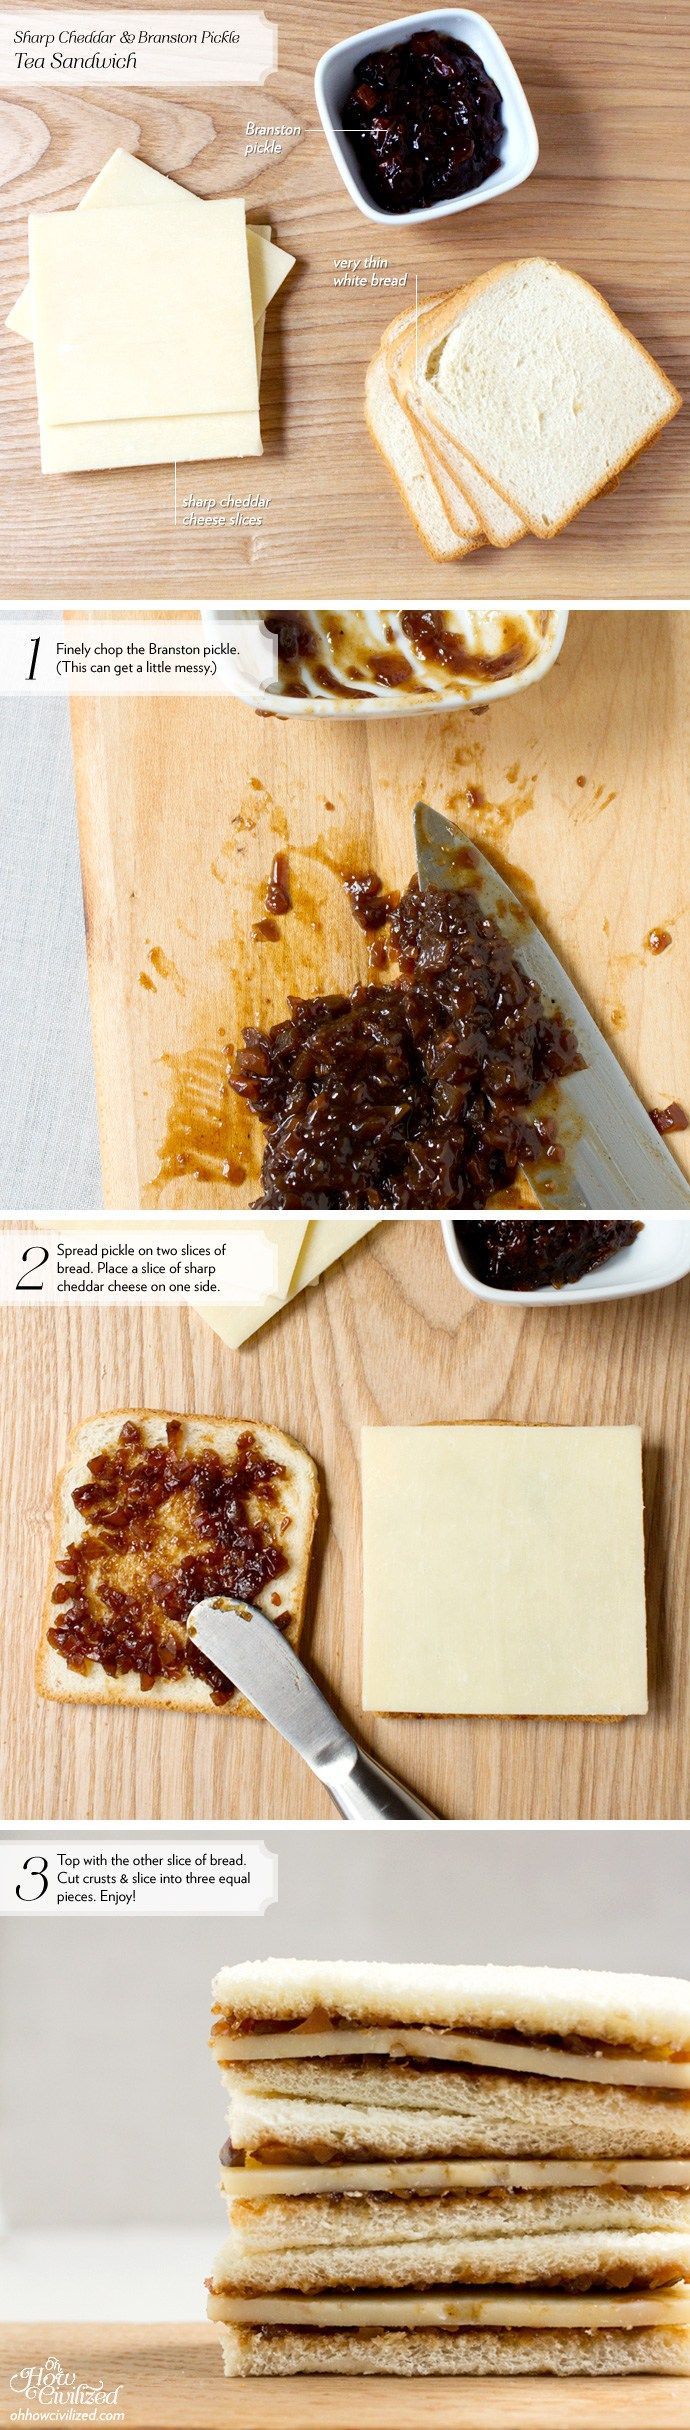 die besten 25 branston pickle ideen auf pinterest. Black Bedroom Furniture Sets. Home Design Ideas